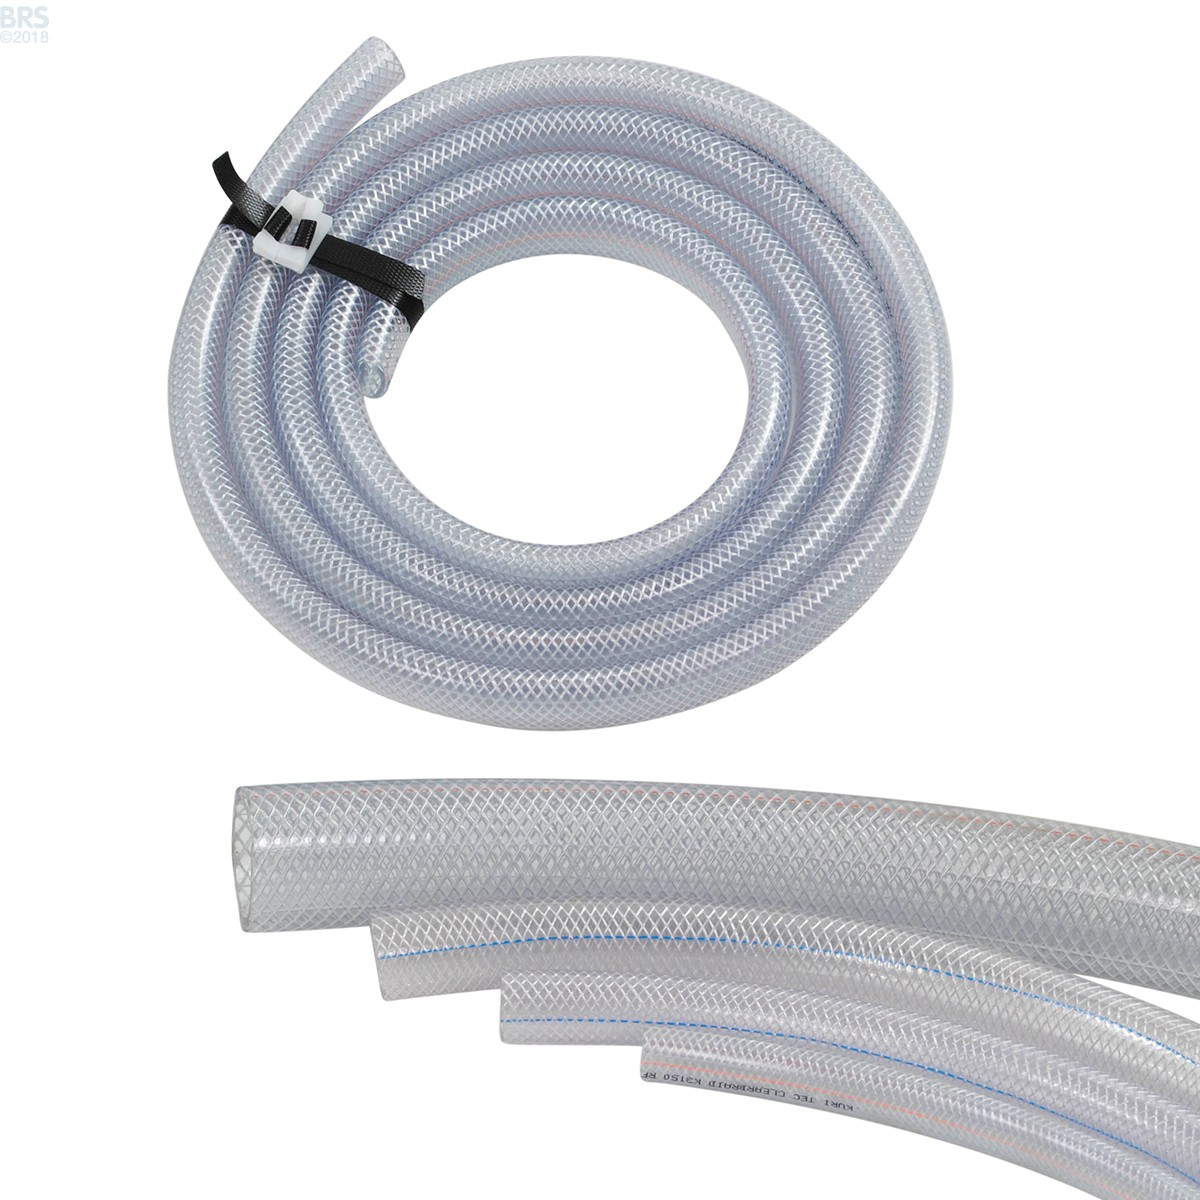 Braided Nylon Tubing Sold by the Foot - Bulk Reef Supply